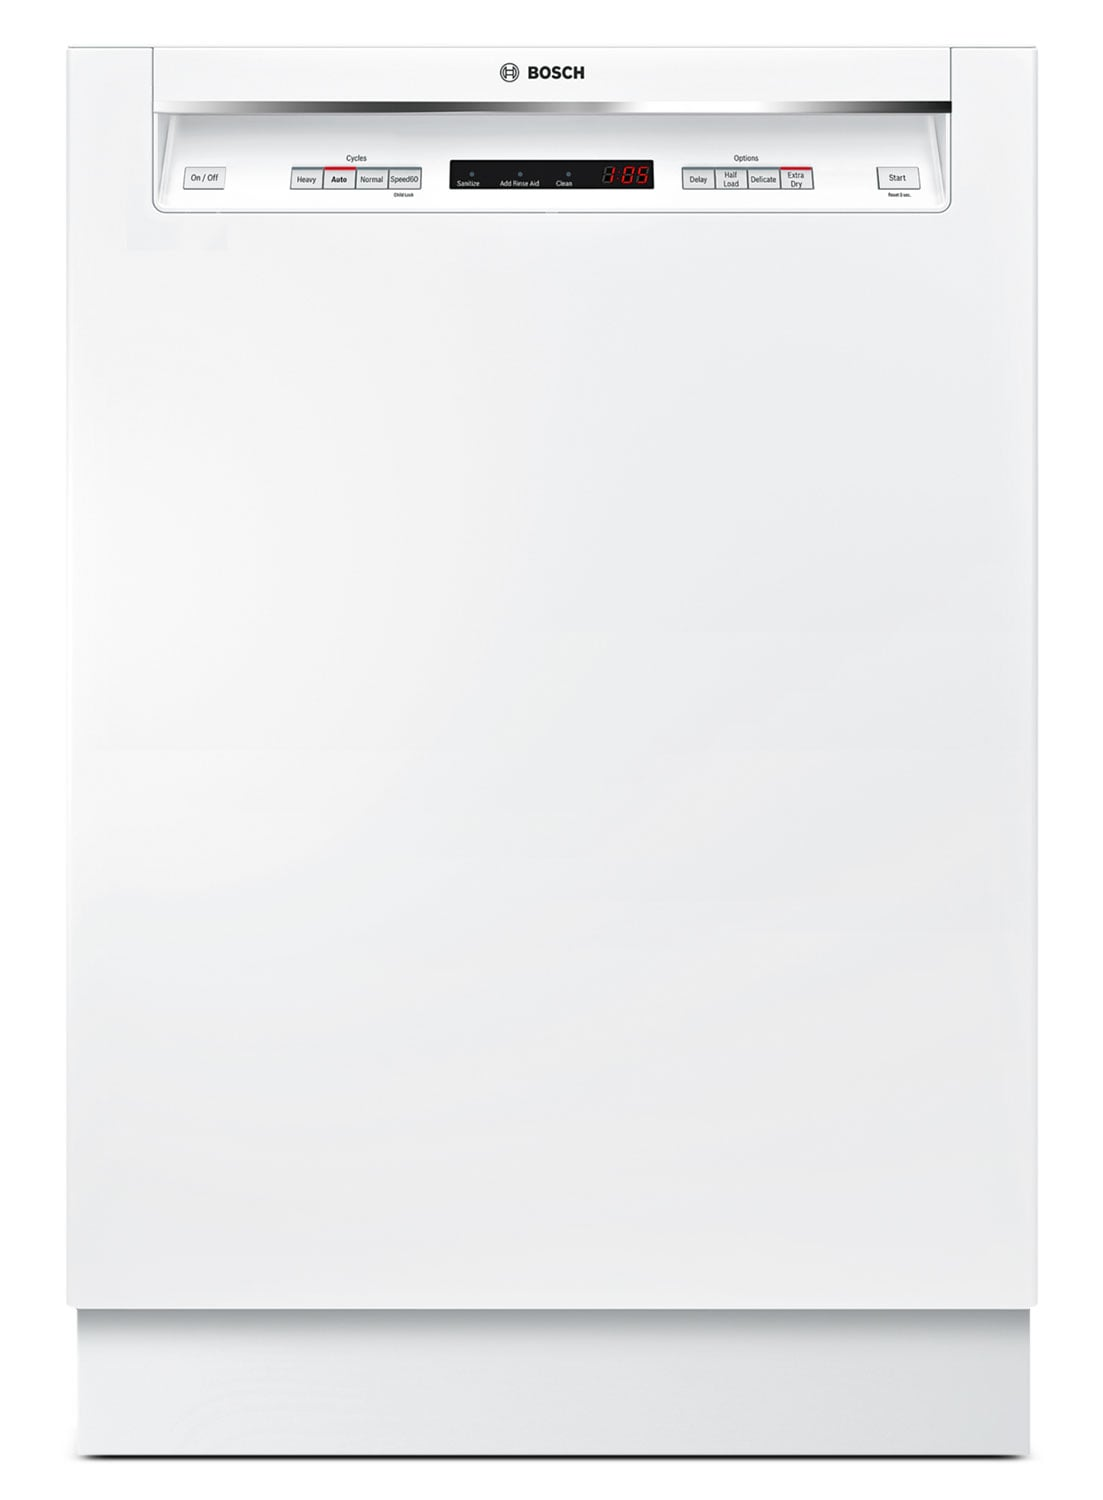 "Clean-Up - Bosch White 24"" Dishwasher - SHE4AV52UC"